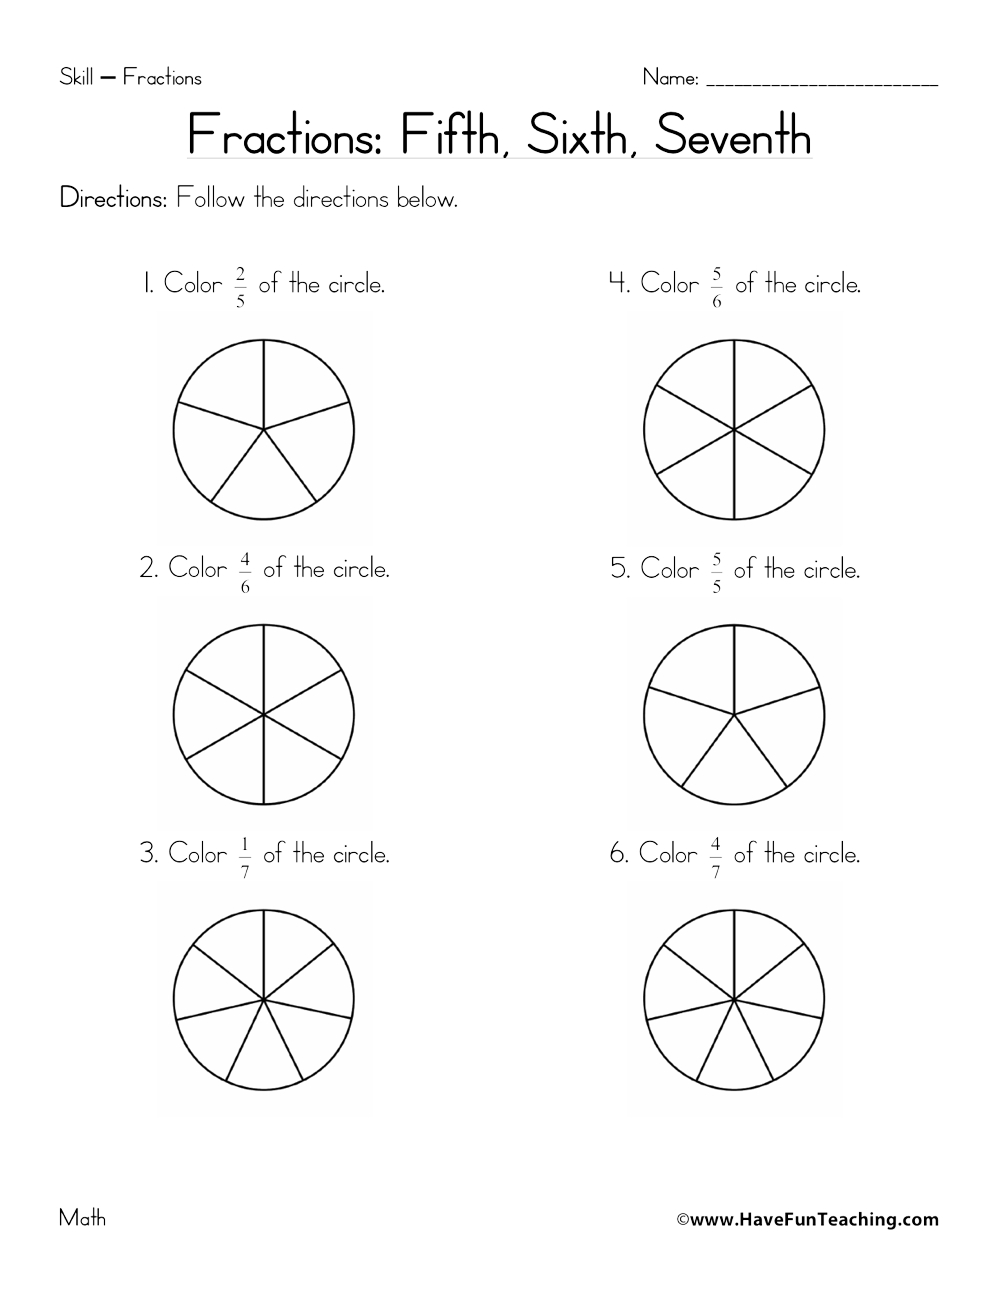 unit fractions worksheet equivalent fraction worksheetsfraction worksheet page 3 of have fun. Black Bedroom Furniture Sets. Home Design Ideas